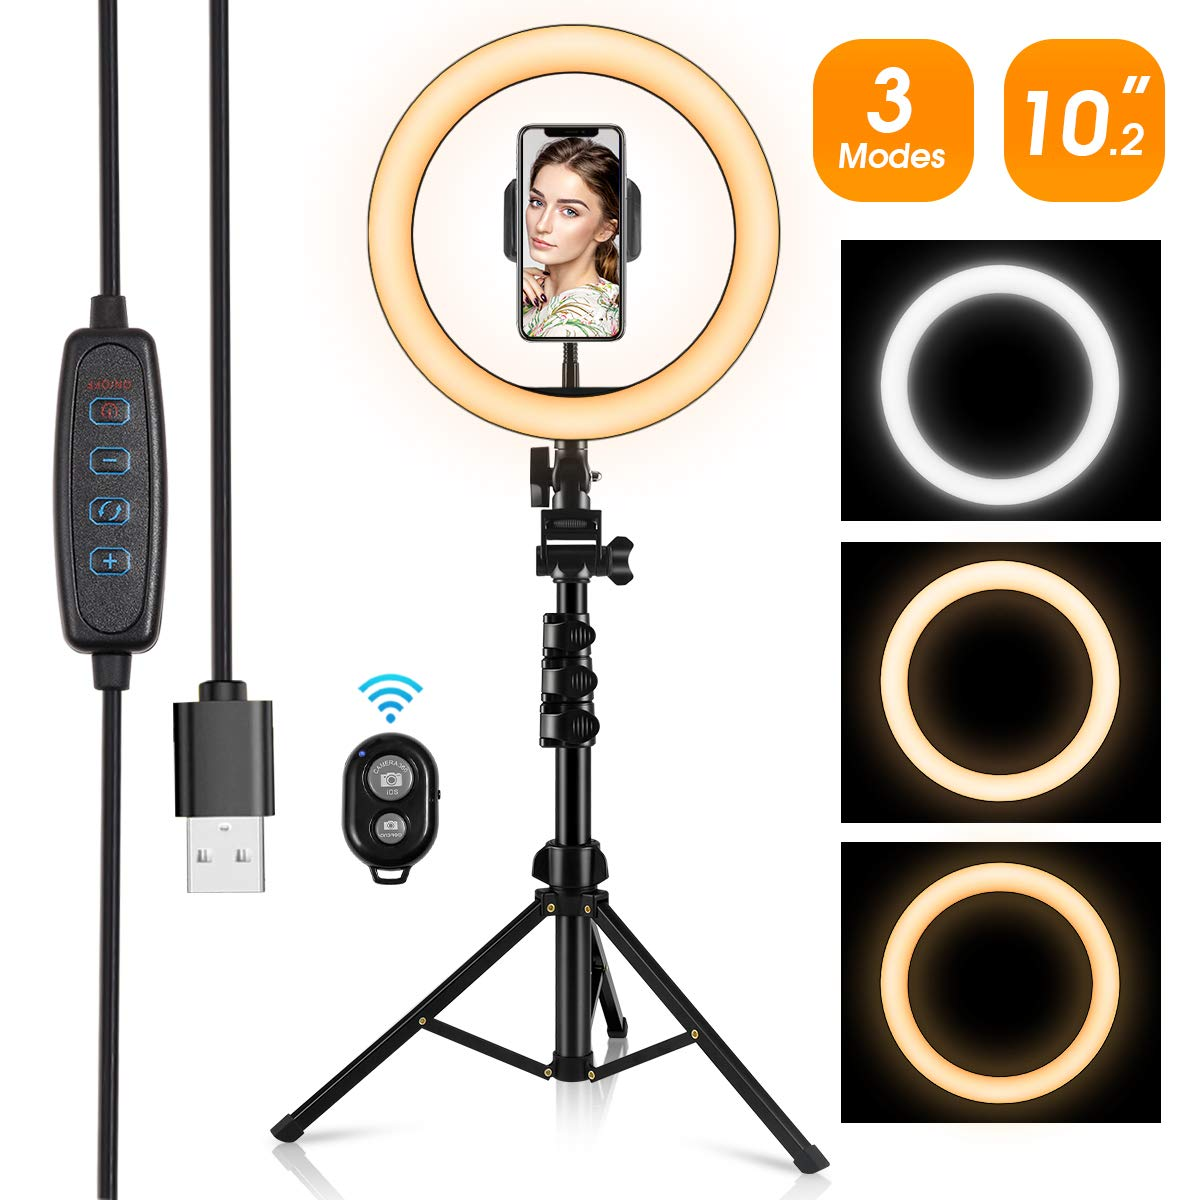 """Ring Light,10.2"""" LED Ring Light with Stand and Phone Holder,Adjustable Bracket(16.56'' to 53.5''),3 Light Modes 10 Brightness,Selfie Dimmable Ringlight for YouTube Video/Live Stream/Makeup/Photography"""